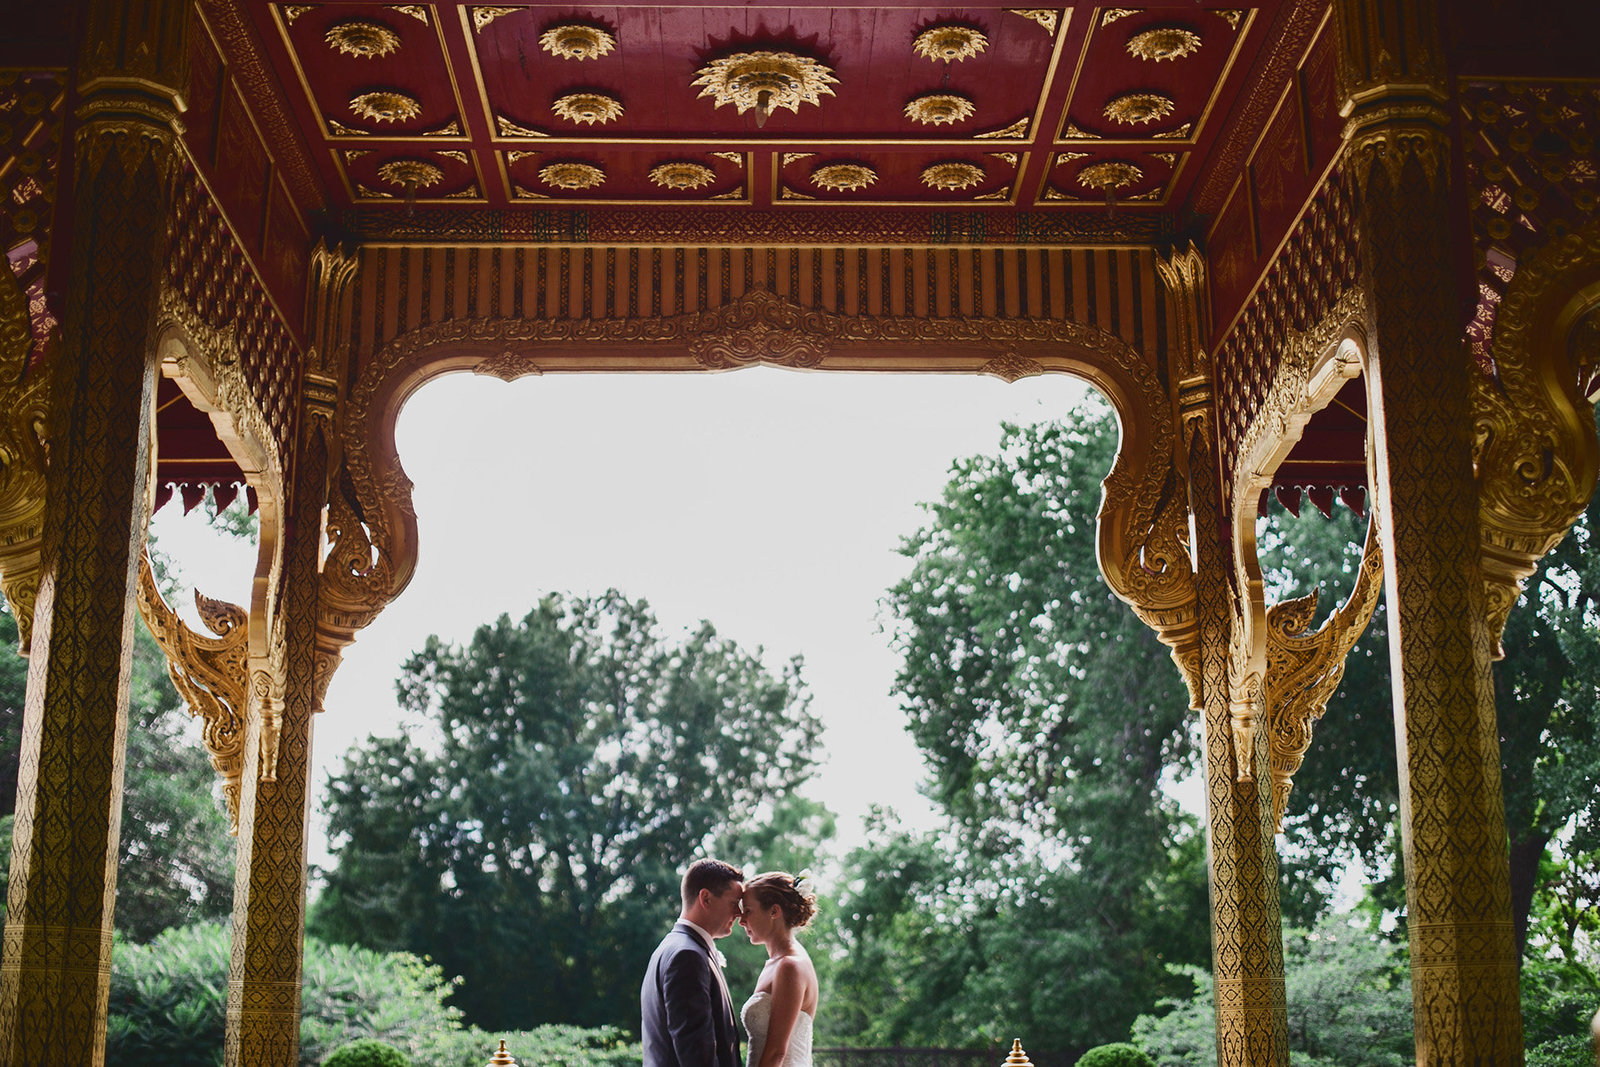 Bride and groom photos at Olbrich gardens